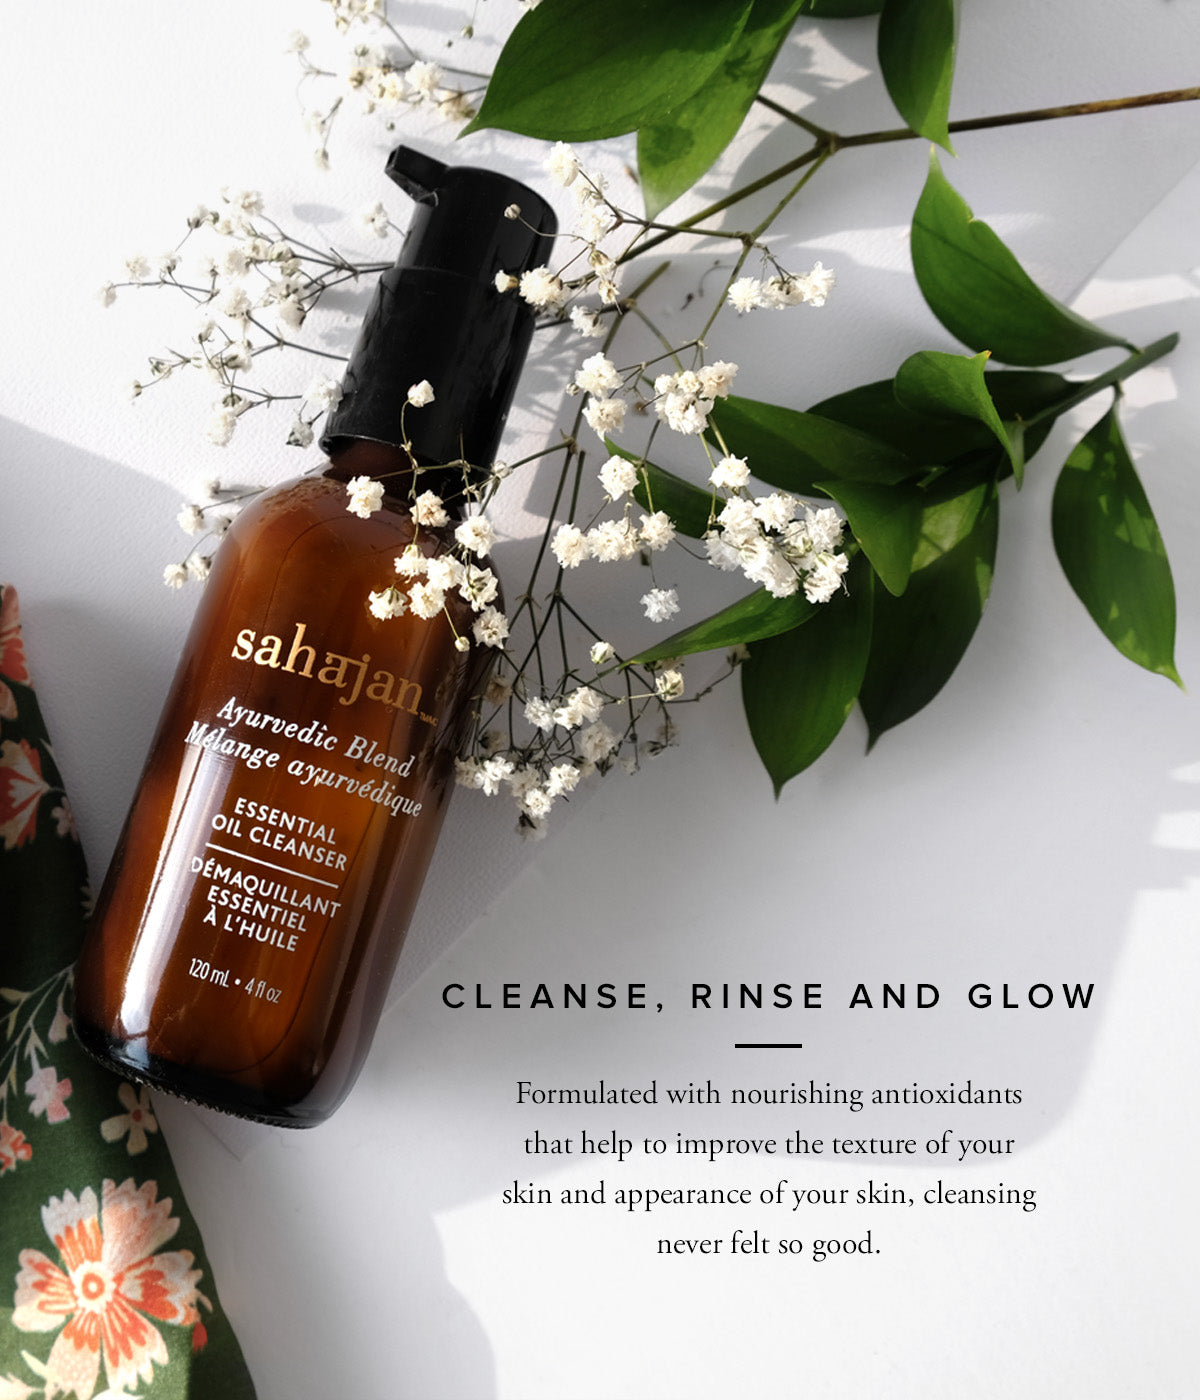 Cleanse, Rinse and Glow  Formulated with nourishing antioxidants that help to improve the texture and appearance of your skin, cleansing never felt so good.